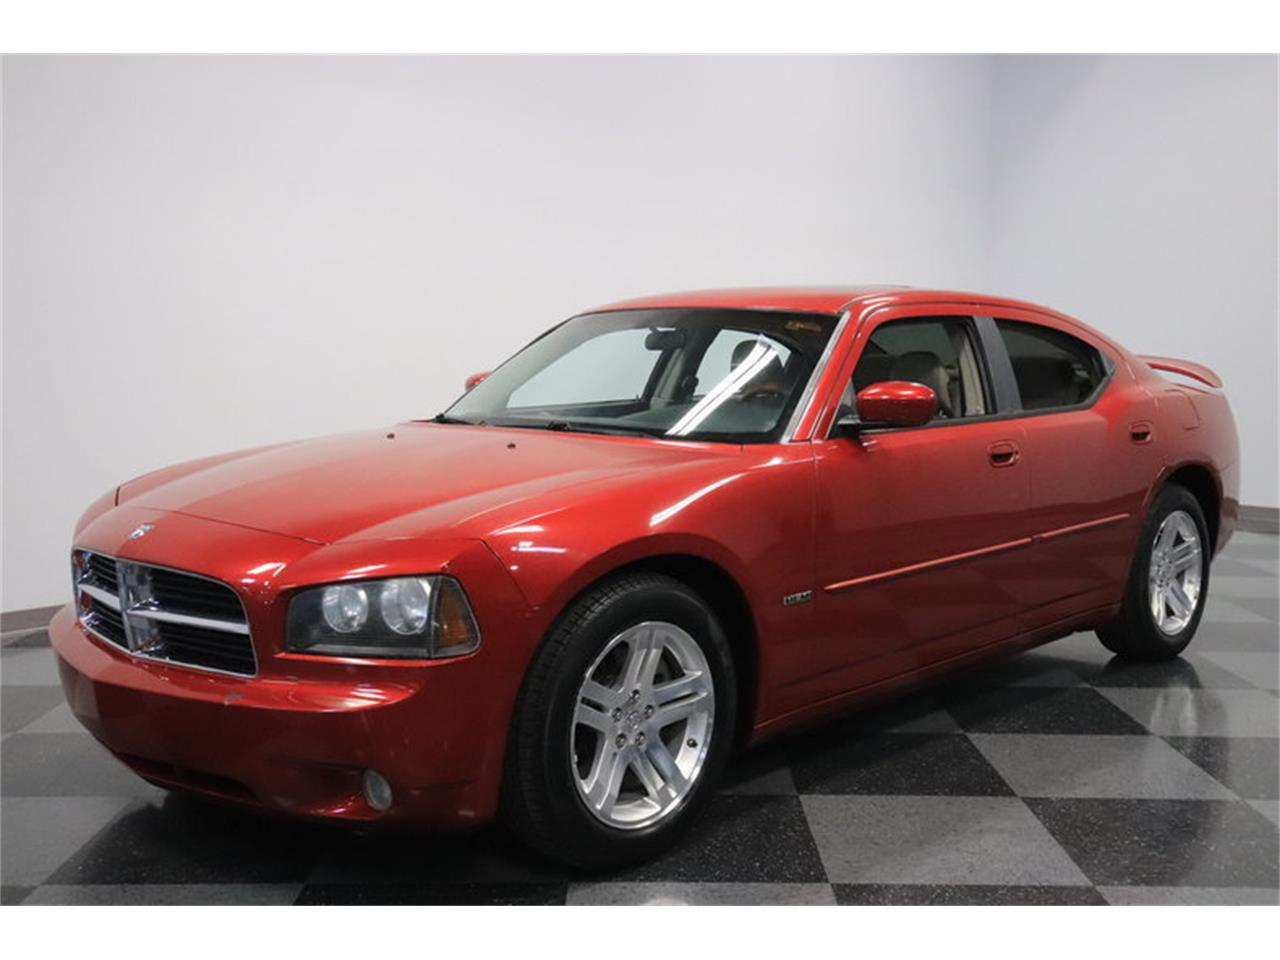 Large Picture of '06 Charger R/T located in Arizona - $8,995.00 - MZDF